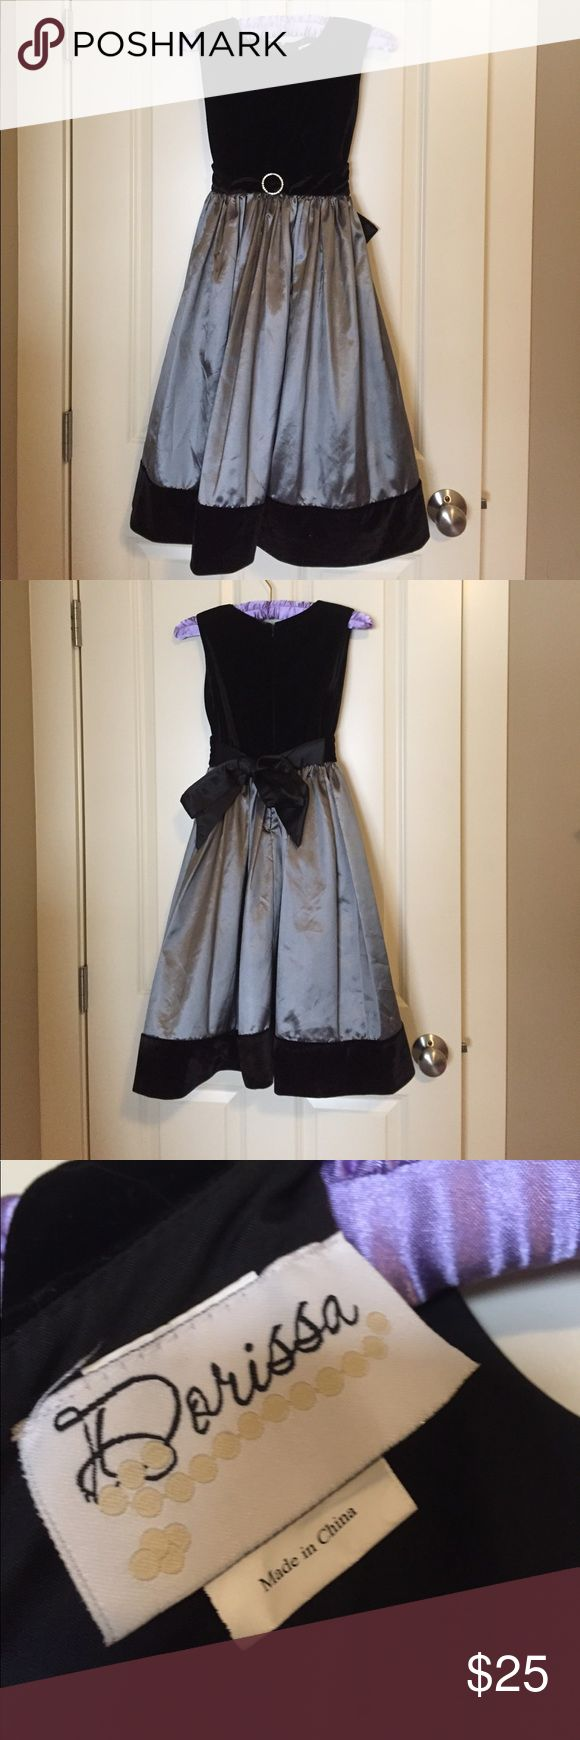 """❤️FINAL PRICE❤️ Gray and Black Girls Dress Dress up your little one! From family photos, to their birthday party, this dress has got you covered! Simple, elegant, classy, and yet - casual enough to make your child want to wear it every day! This dress zips up in the back and features a large black ribbon to tie, it is slightly adjustable in this regard. There is a layer of """"stiff"""" tulle underneath, meaning no one has scrunched it to make it poofy yet! Bundle to save even more! Let me know if…"""